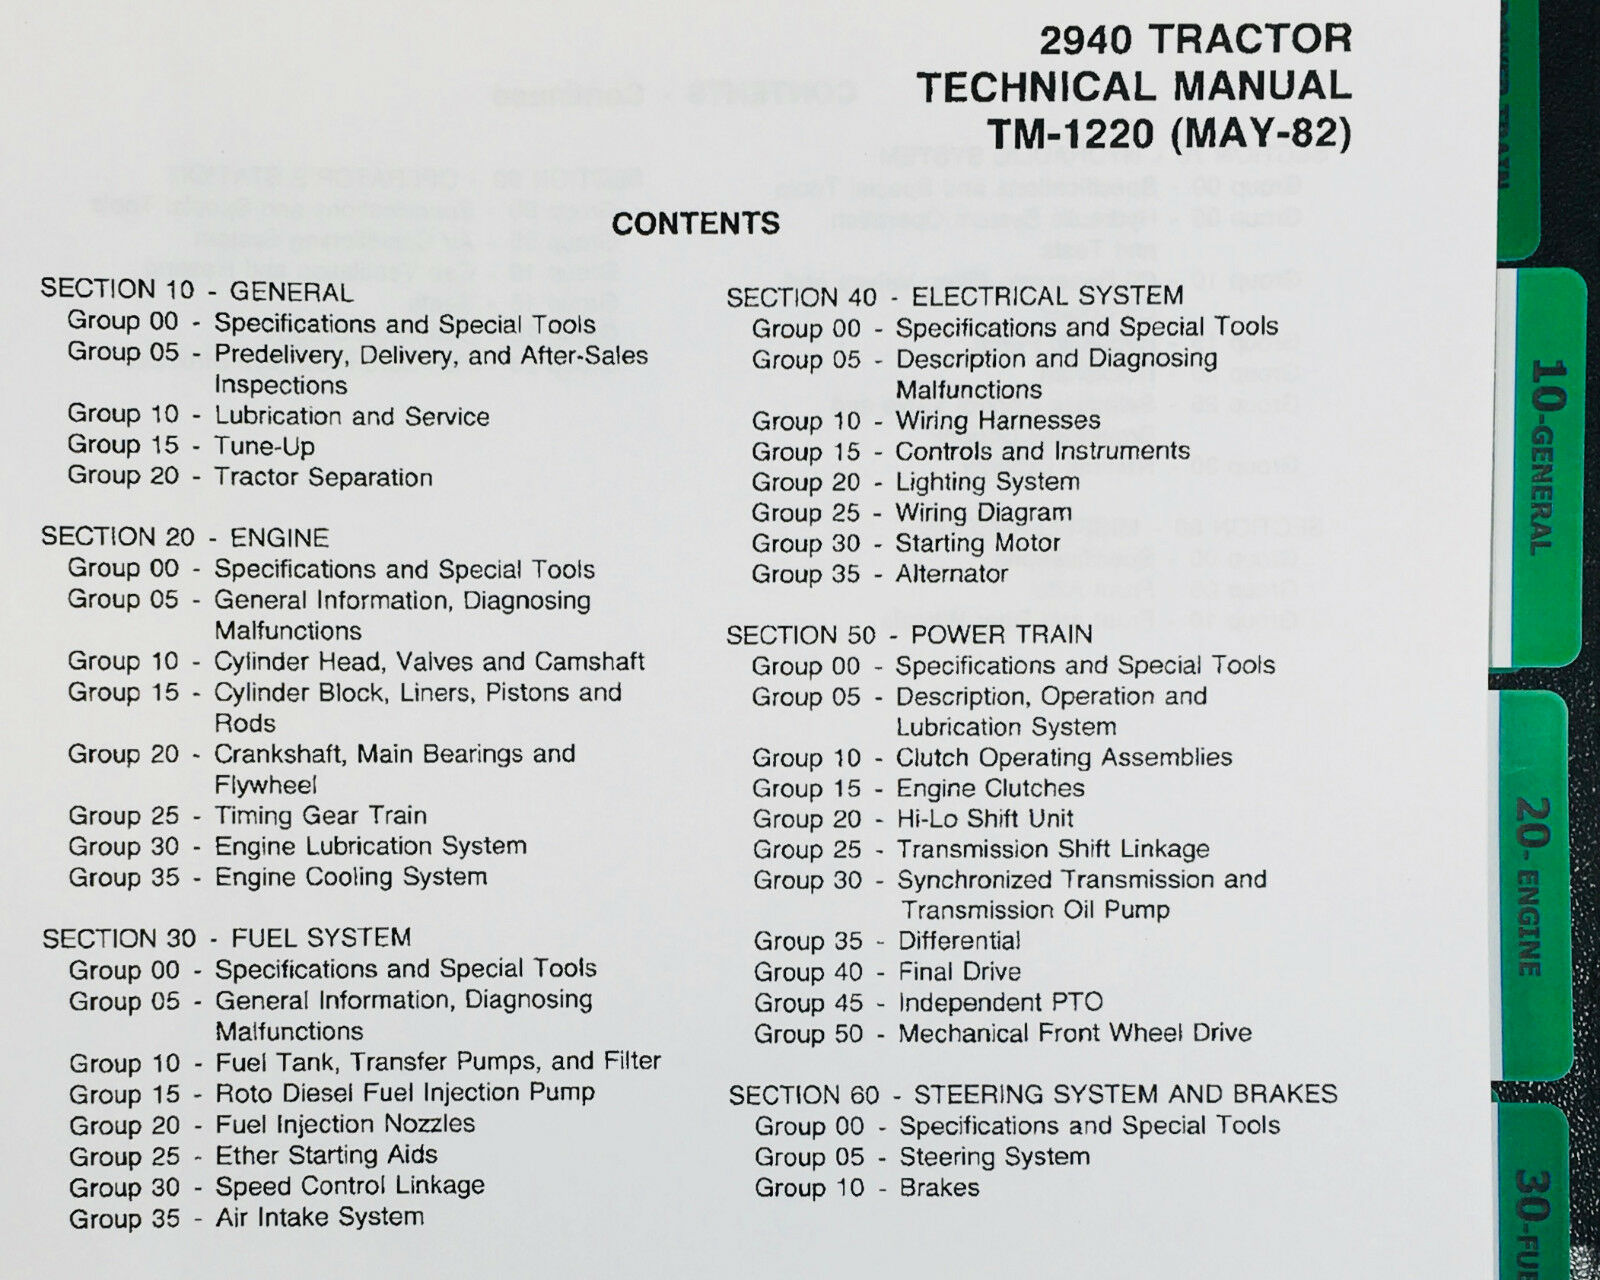 TECHNICAL SERVICE MANUAL JOHN DEERE 2940 TRACTOR TM-1220